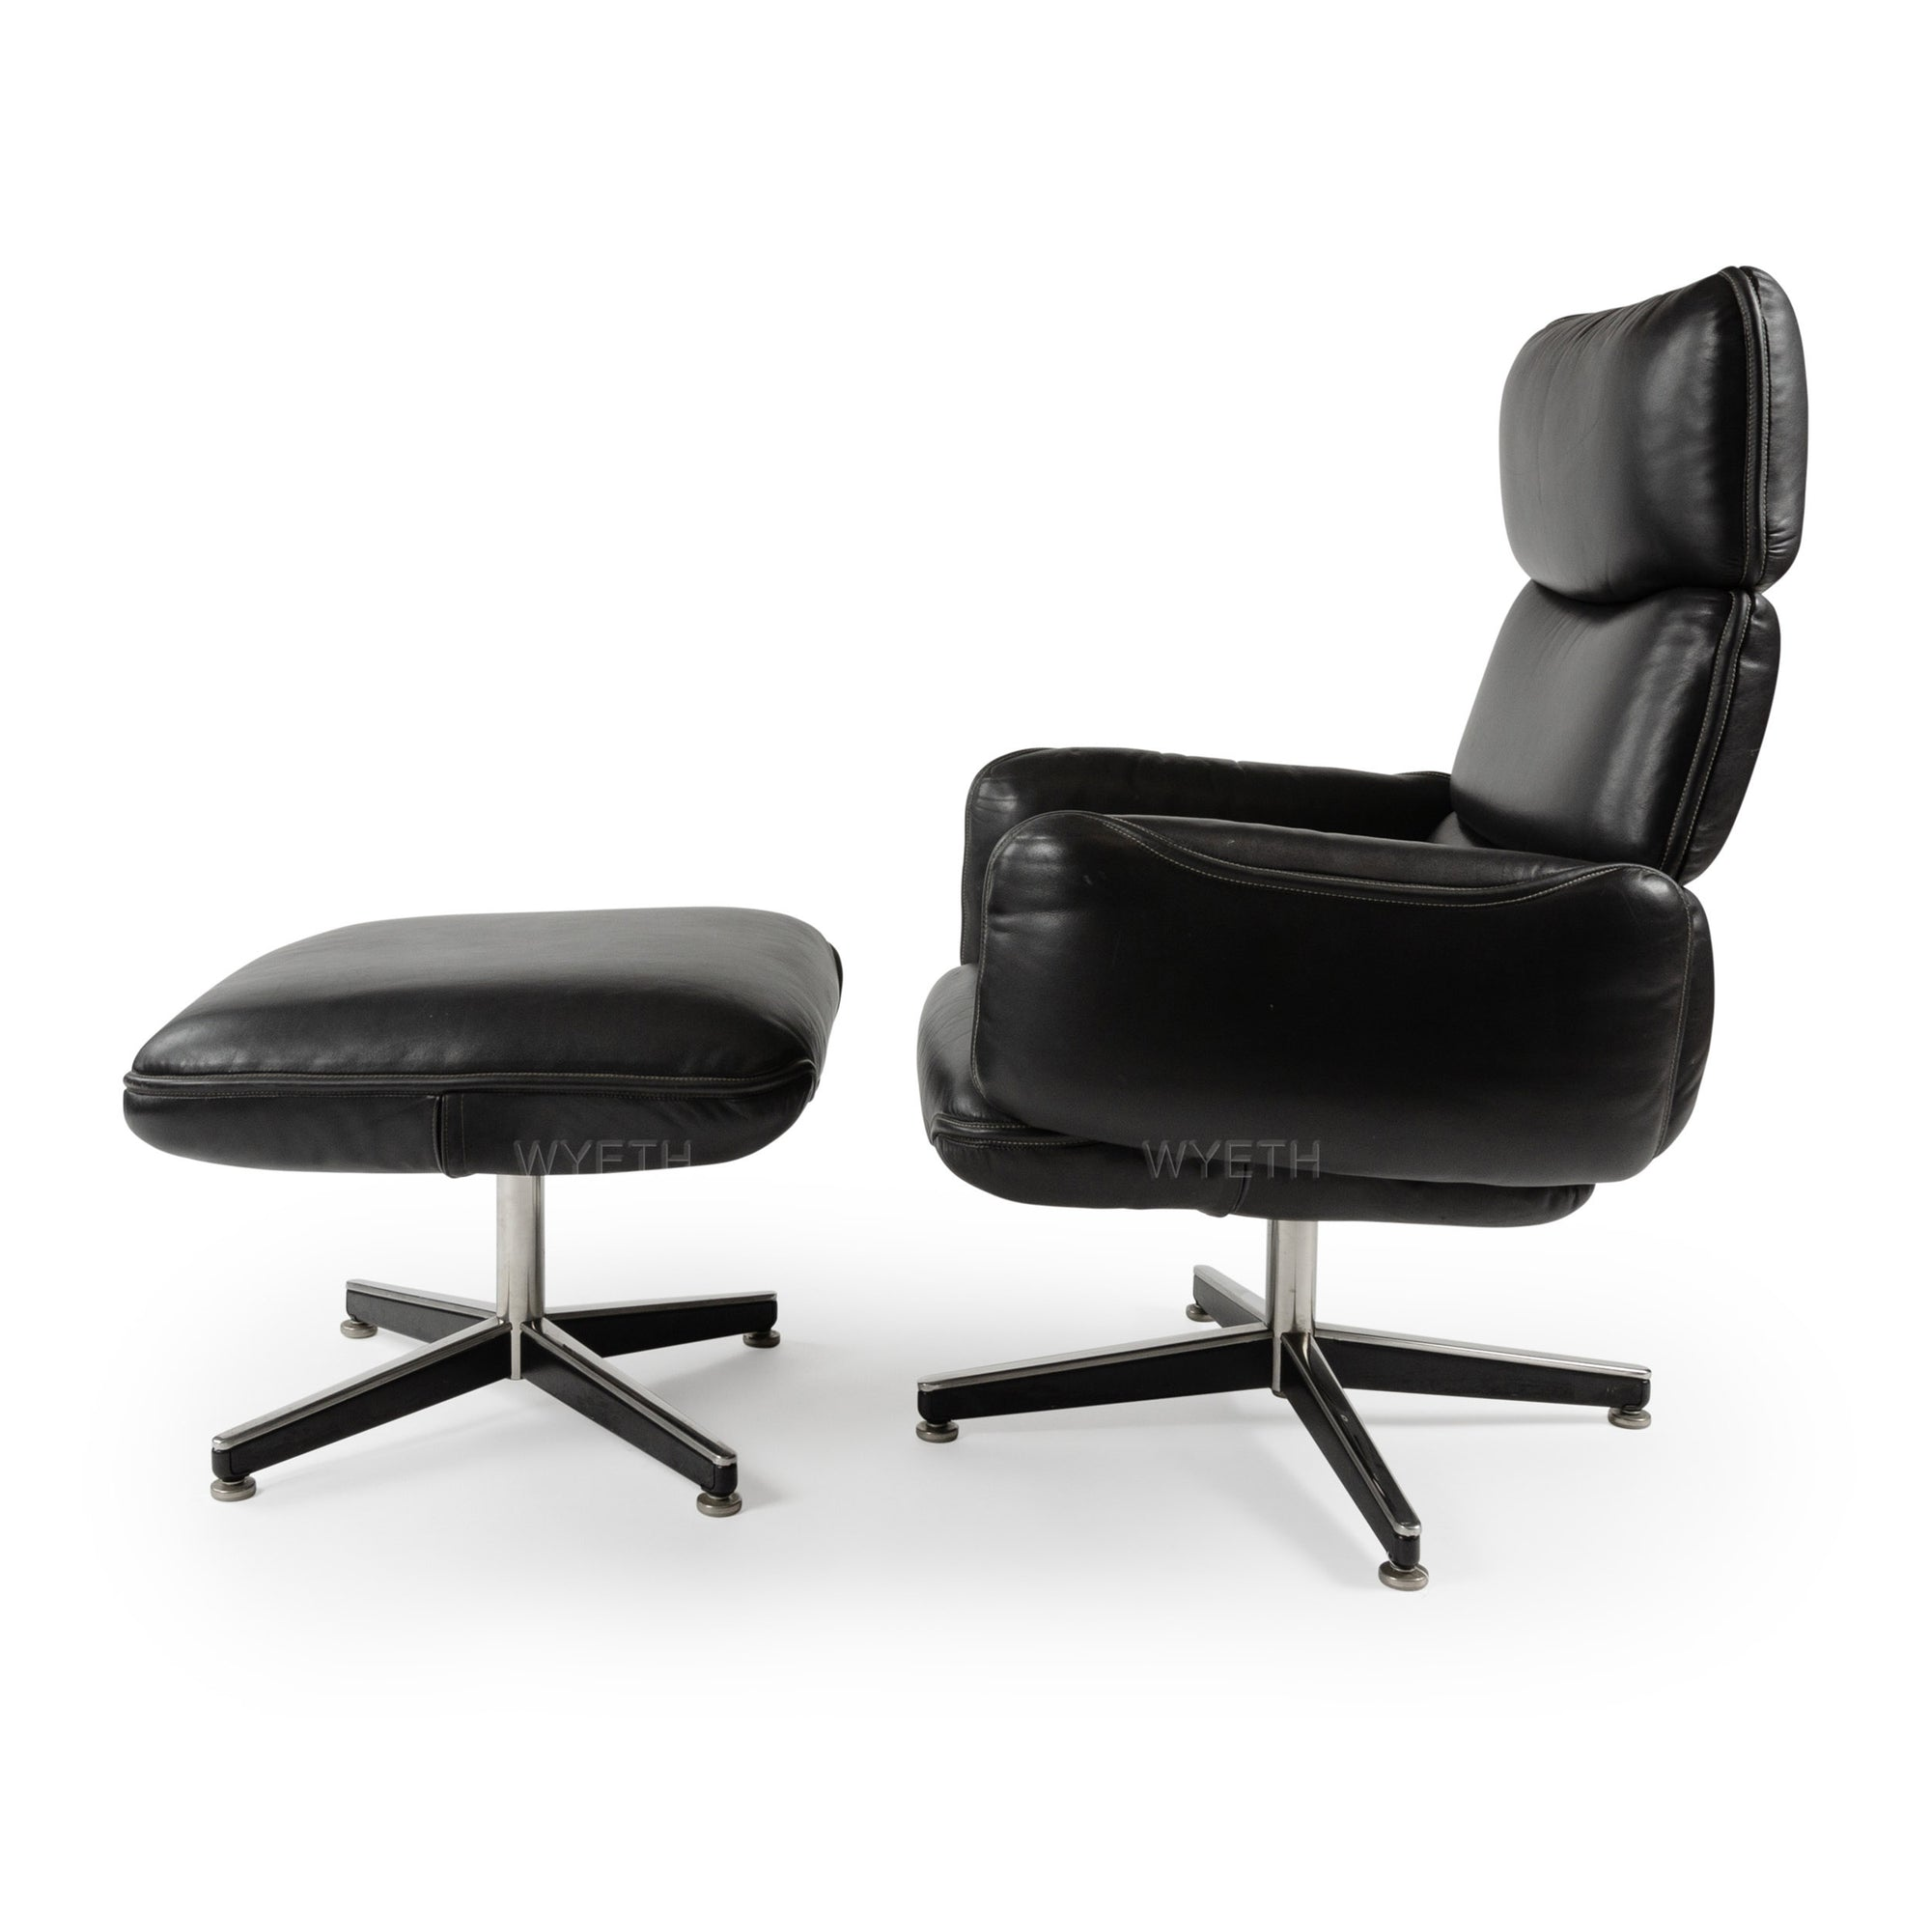 Executive Chair & Footstool